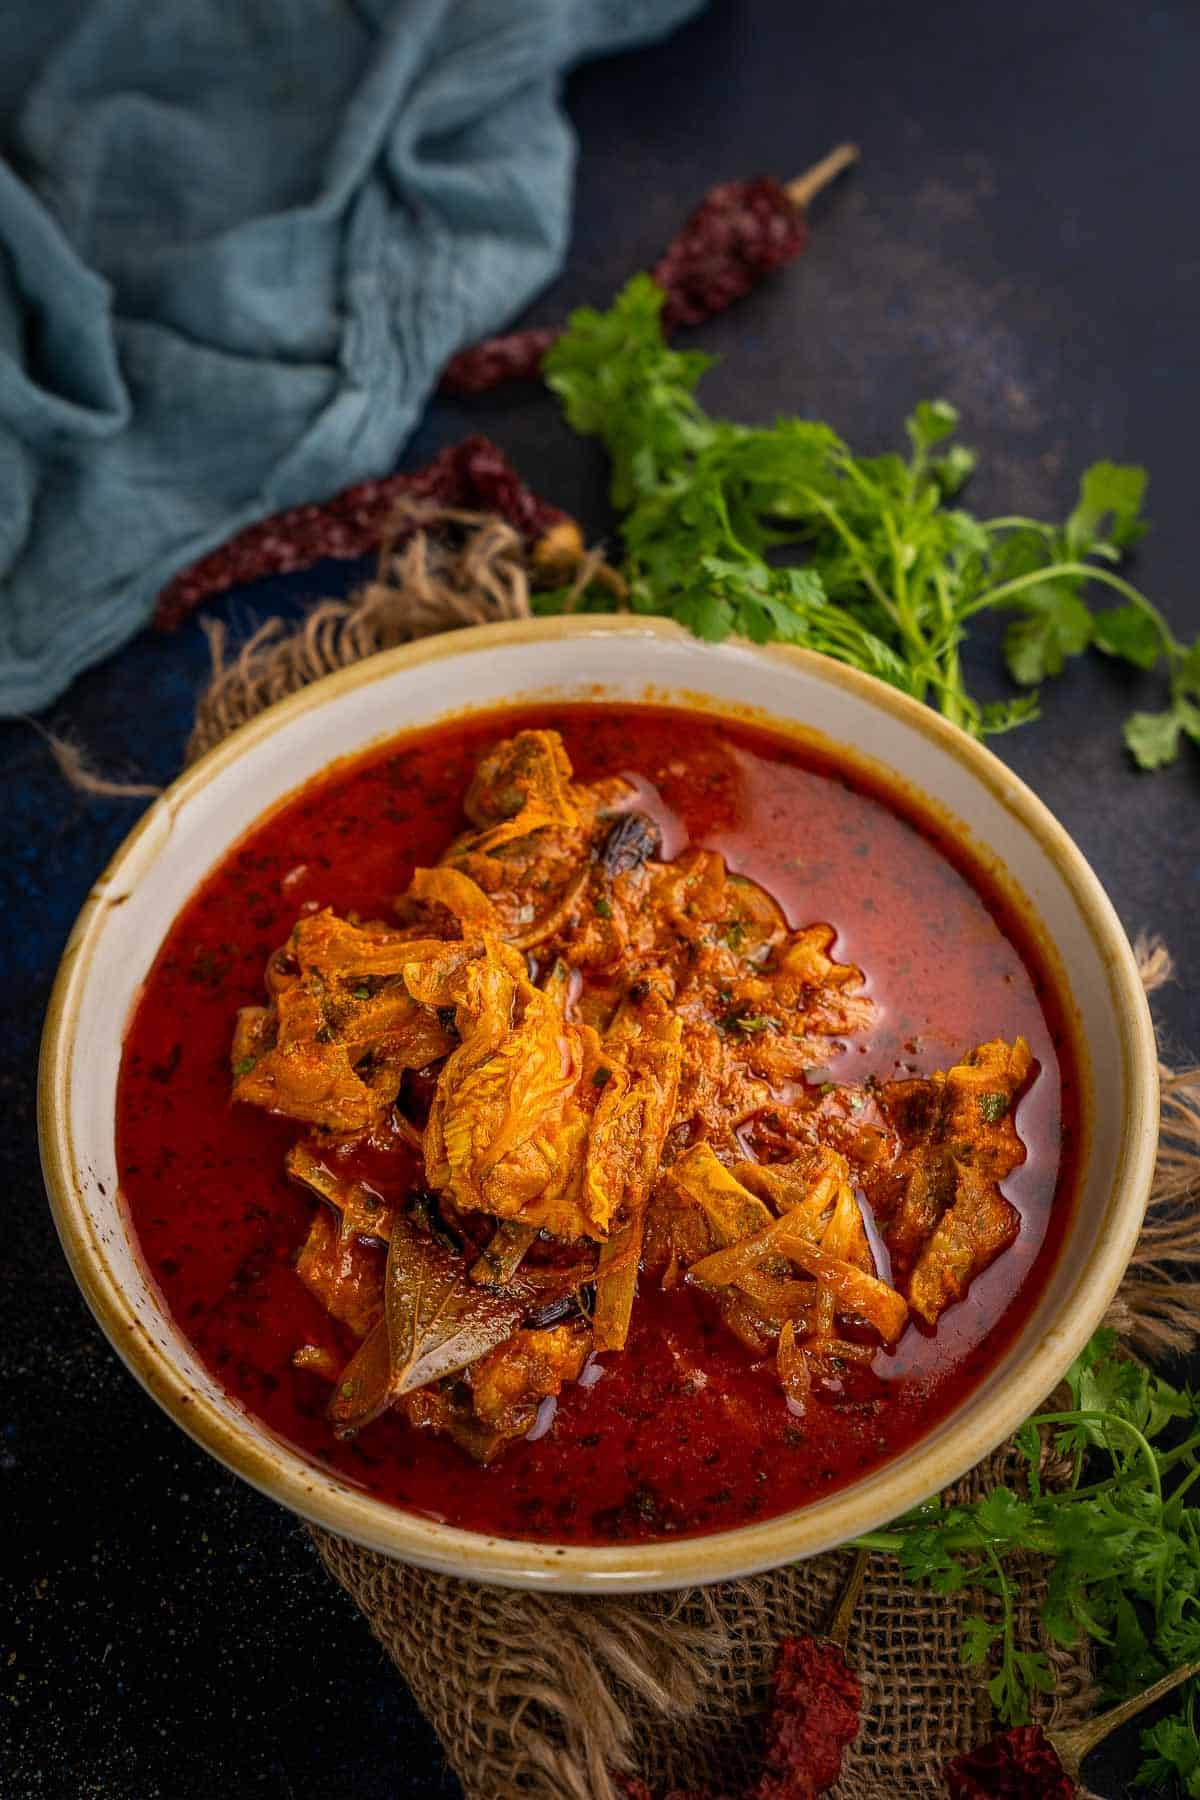 Laal Maas served in a bowl.